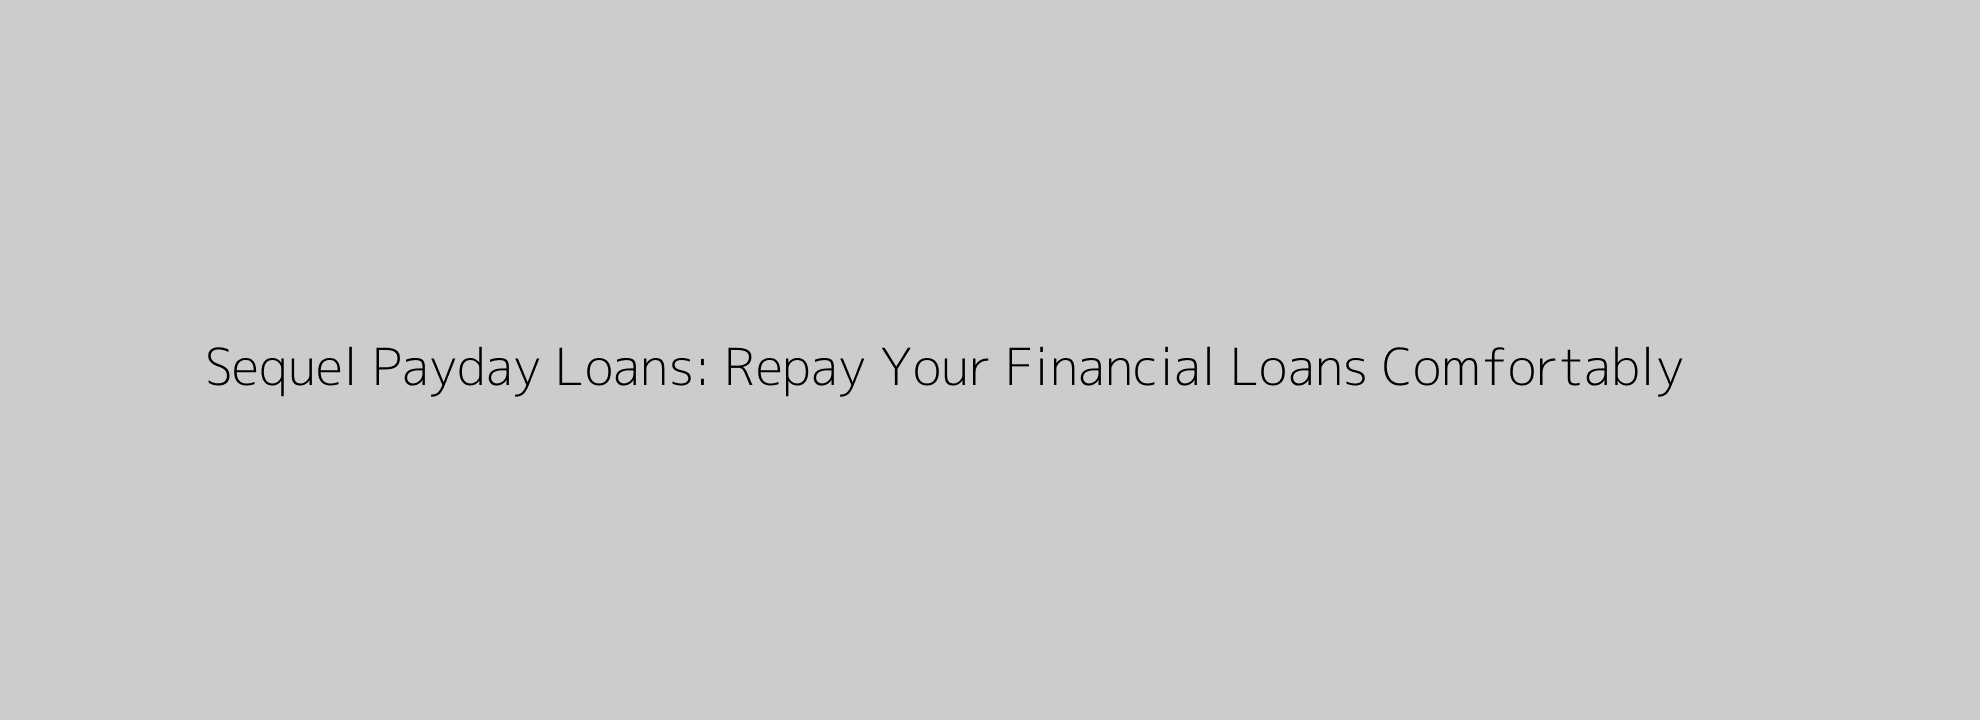 Sequel Payday Loans: Repay Your Financial Loans Comfortably